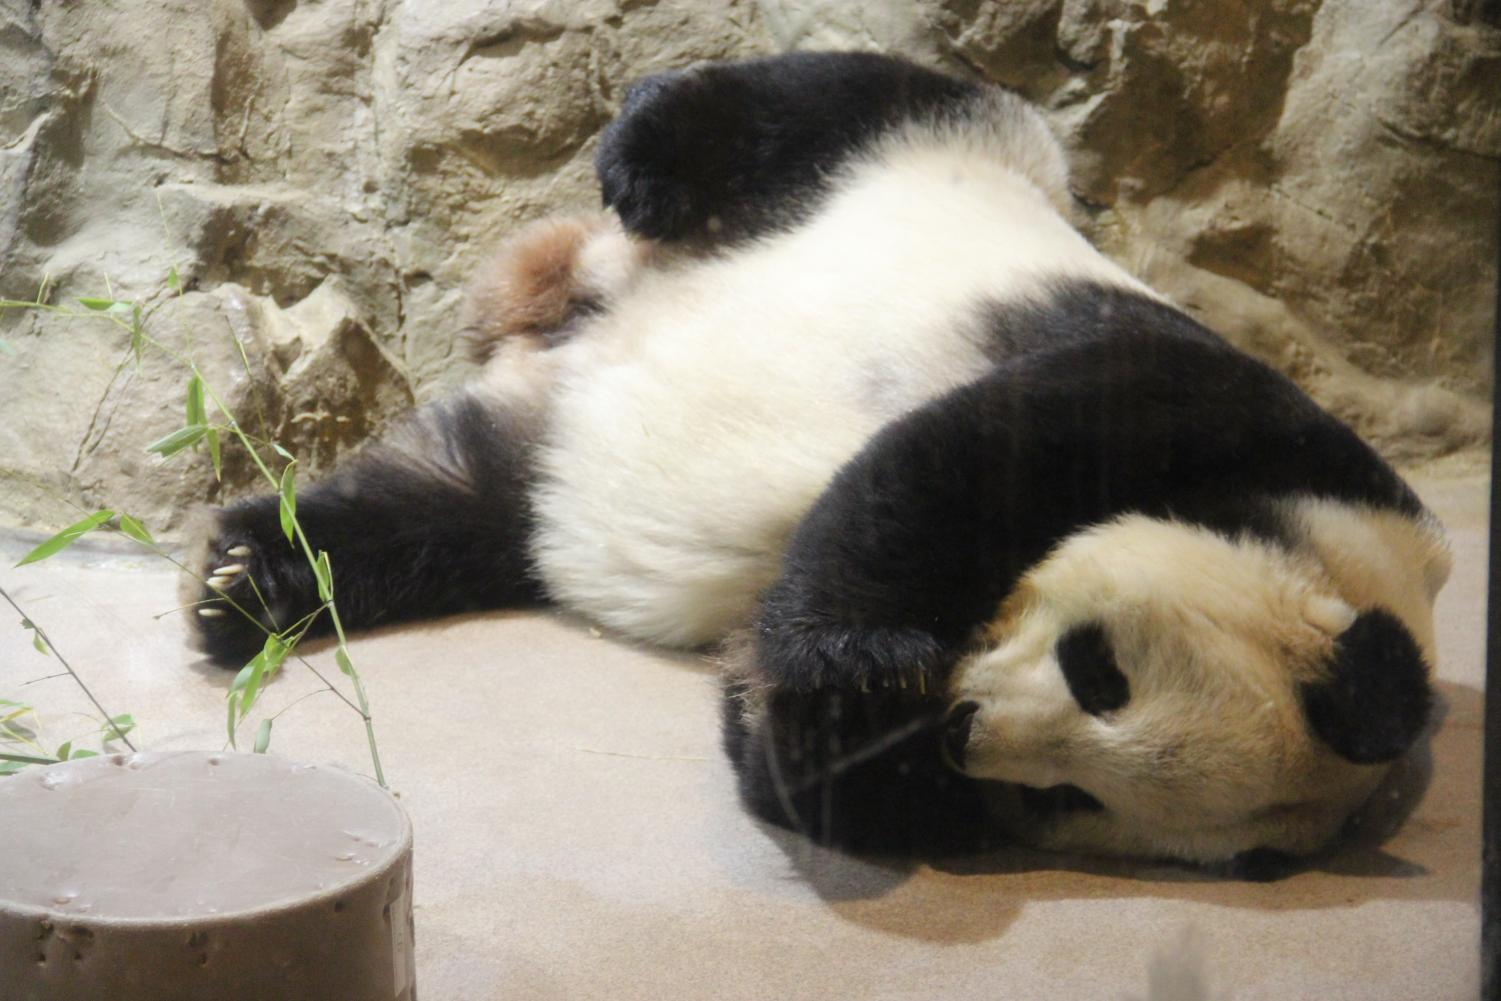 Tian Tian lounges around during nap time. Tian Tian is the Smithsonian National Zoological Park's male giant panda on loan from China.